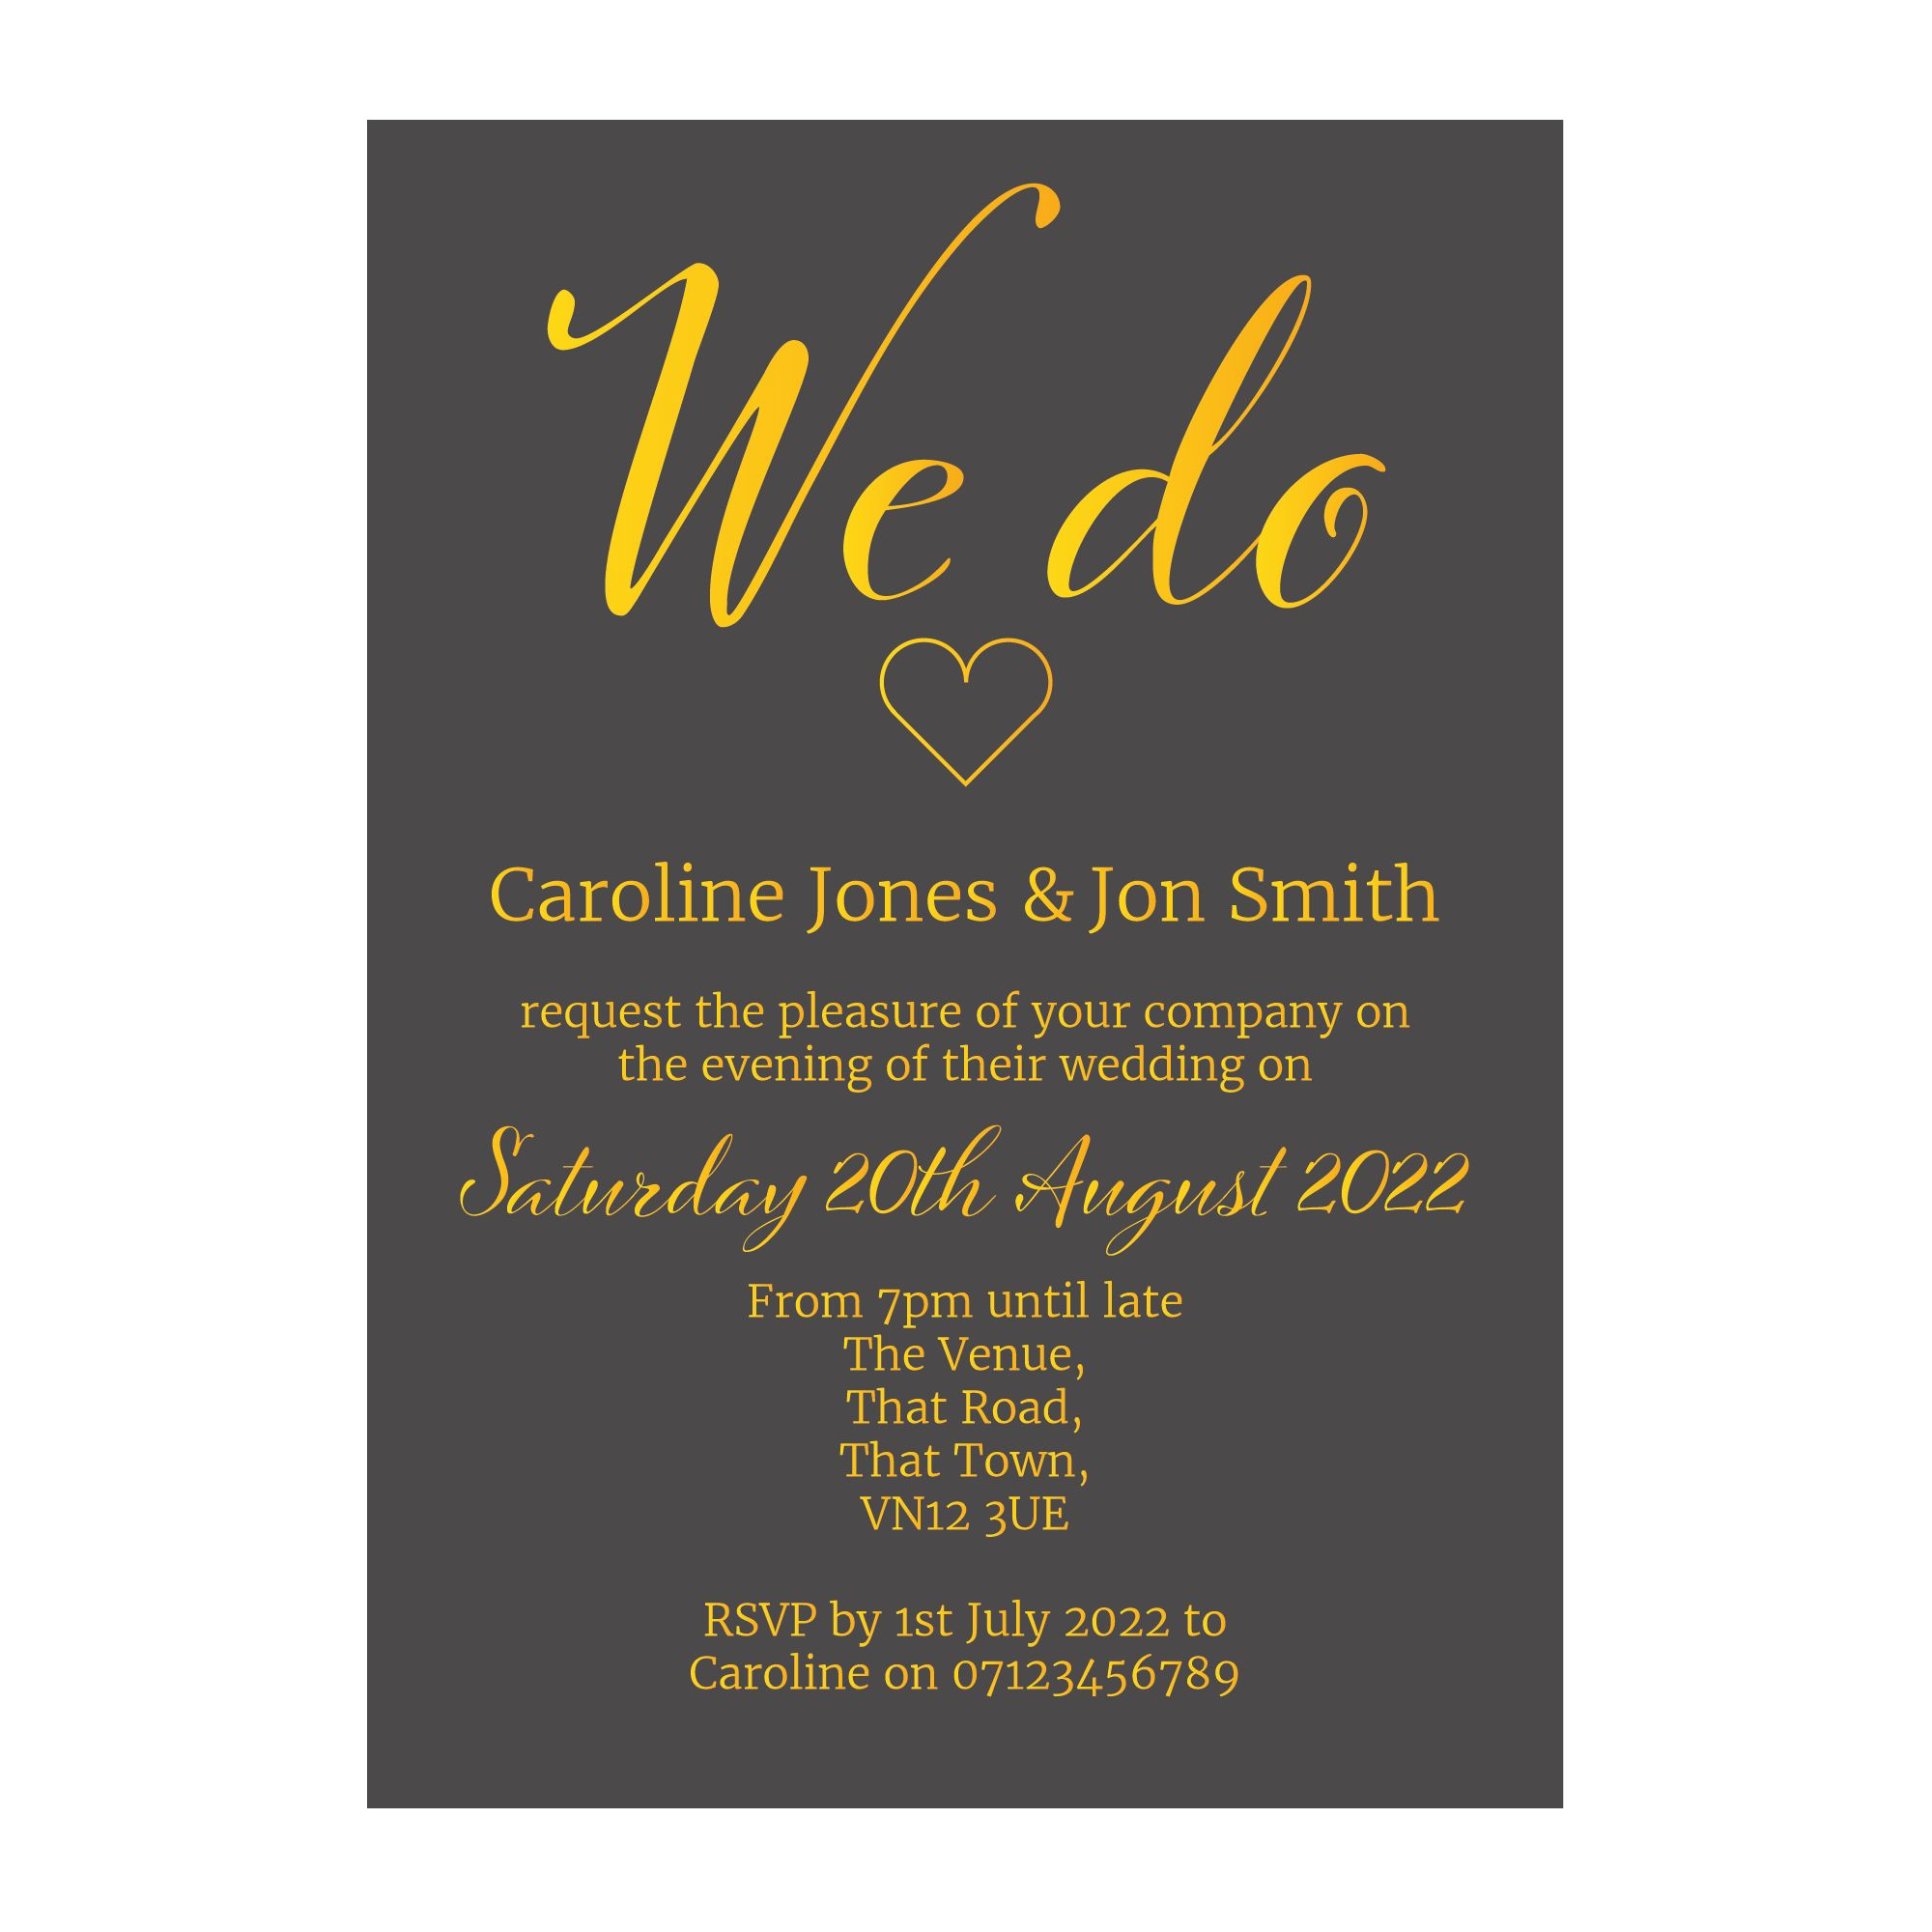 Grey with Gold Foil We Do Reception Invitations